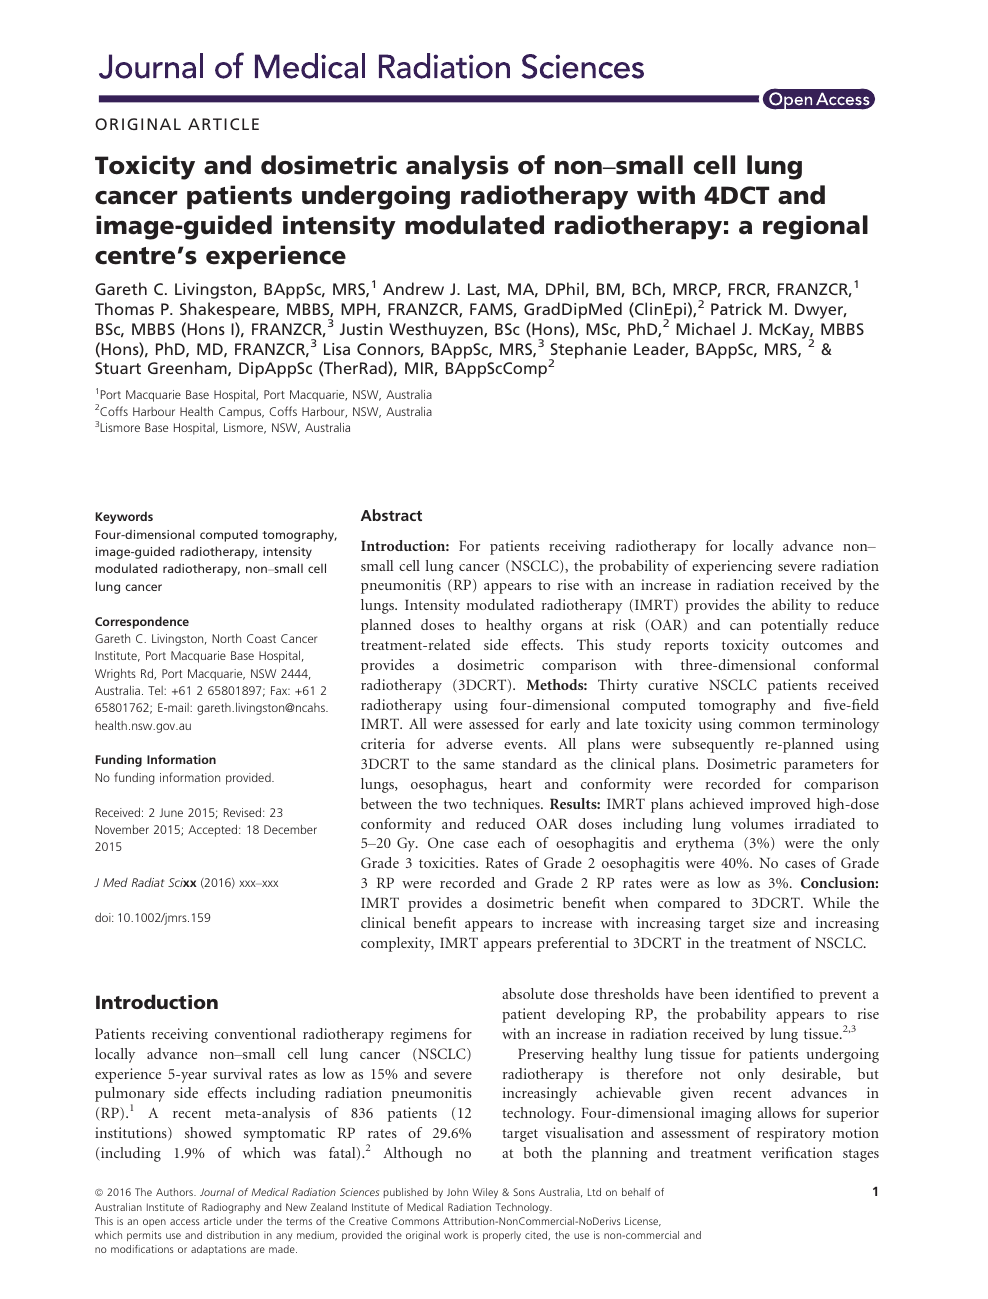 Toxicity and dosimetric analysis of non-small cell lung